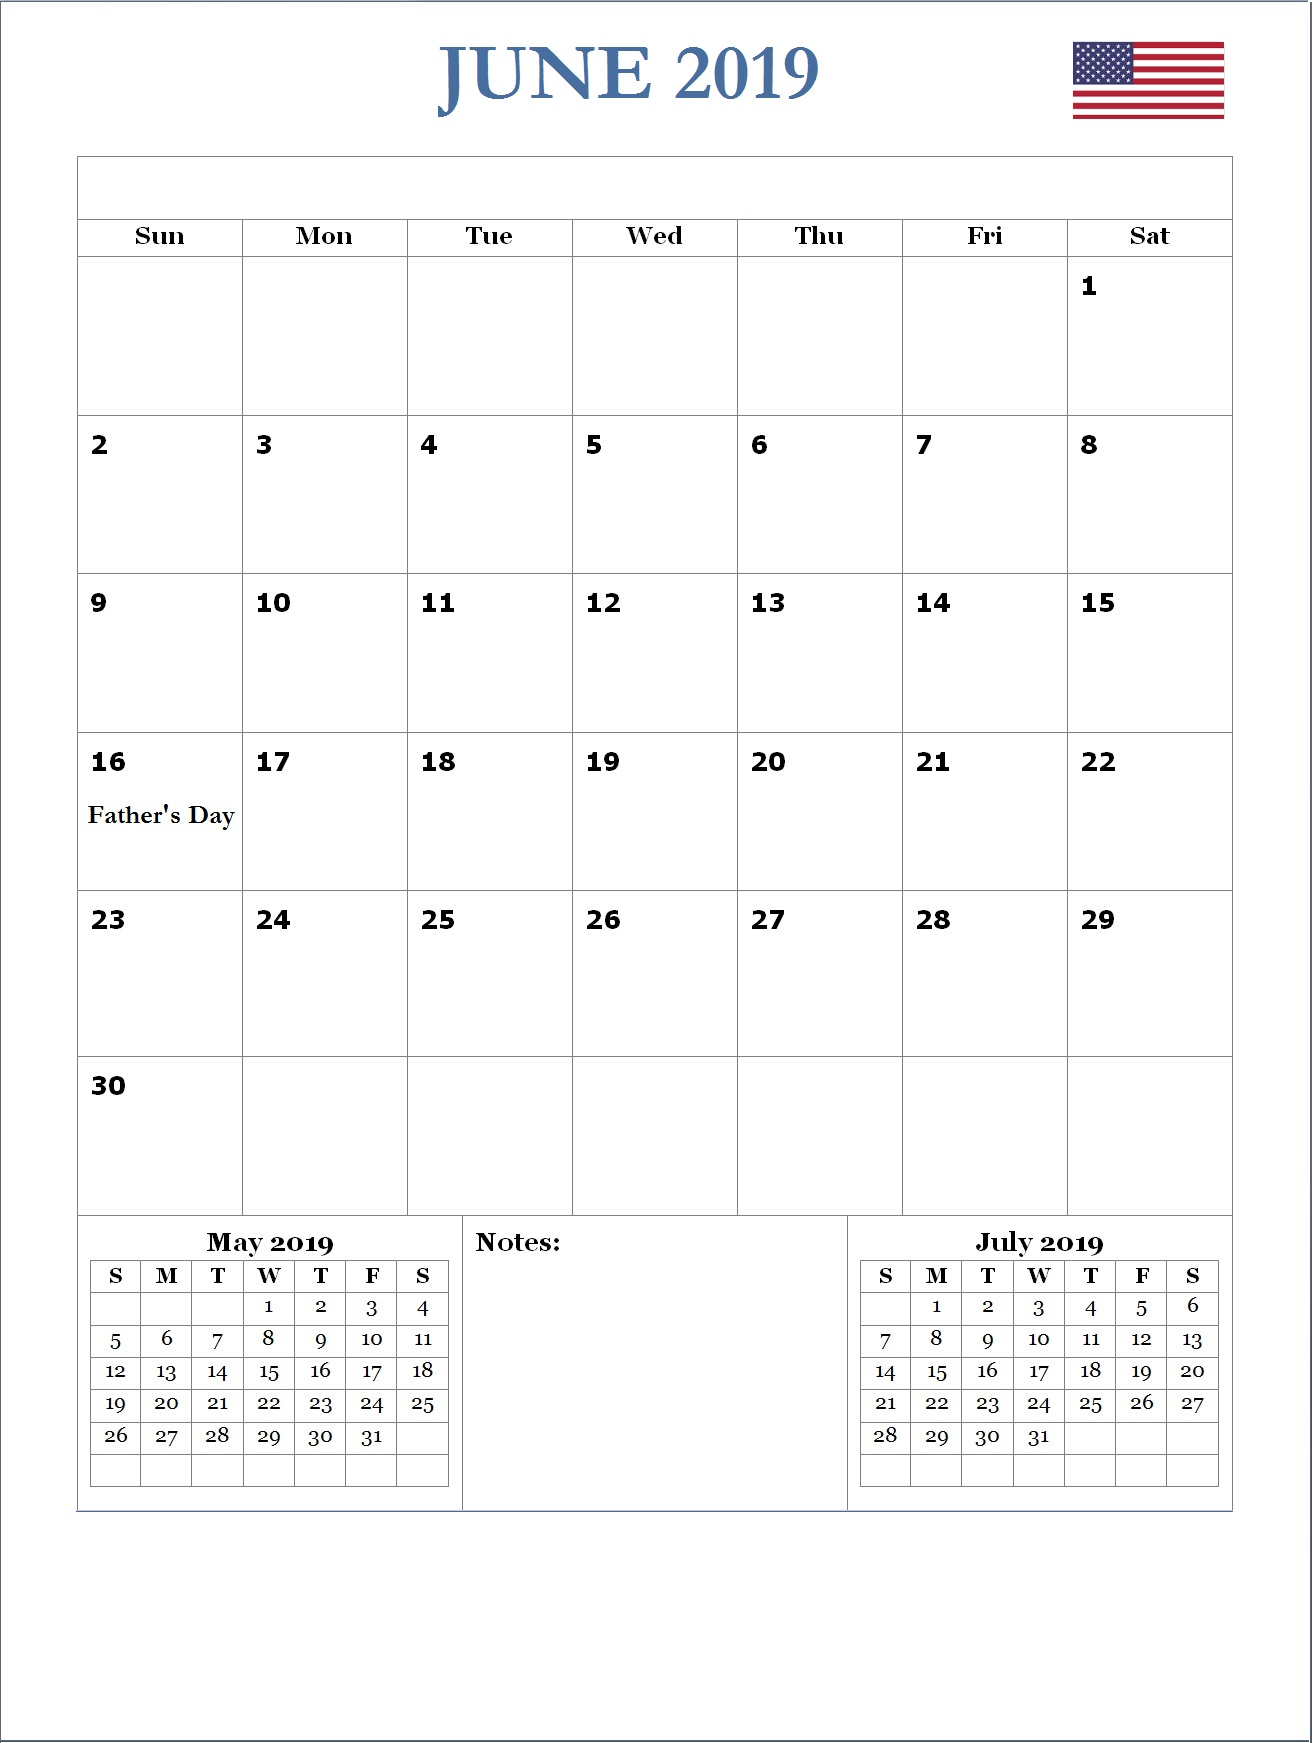 2019 June USA Holidays Calendar